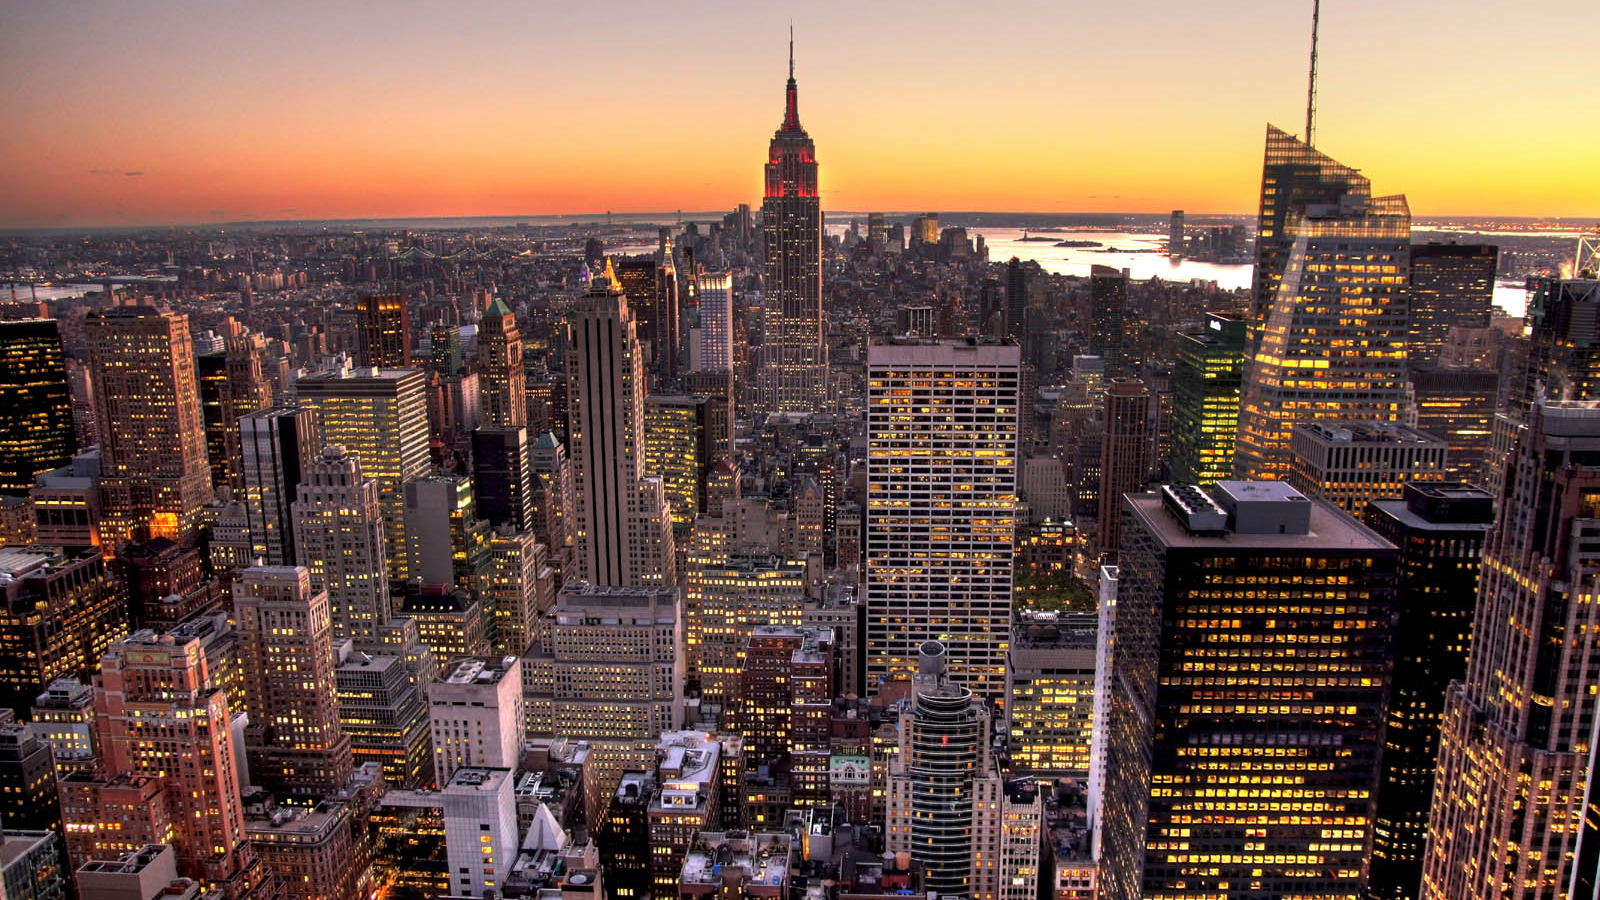 Free Download New York City Wallpapers Manhattan New York City Desktop Wallpapers 1600x1000 For Your Desktop Mobile Tablet Explore 77 New York City Desktop Wallpaper Free New York Wallpaper